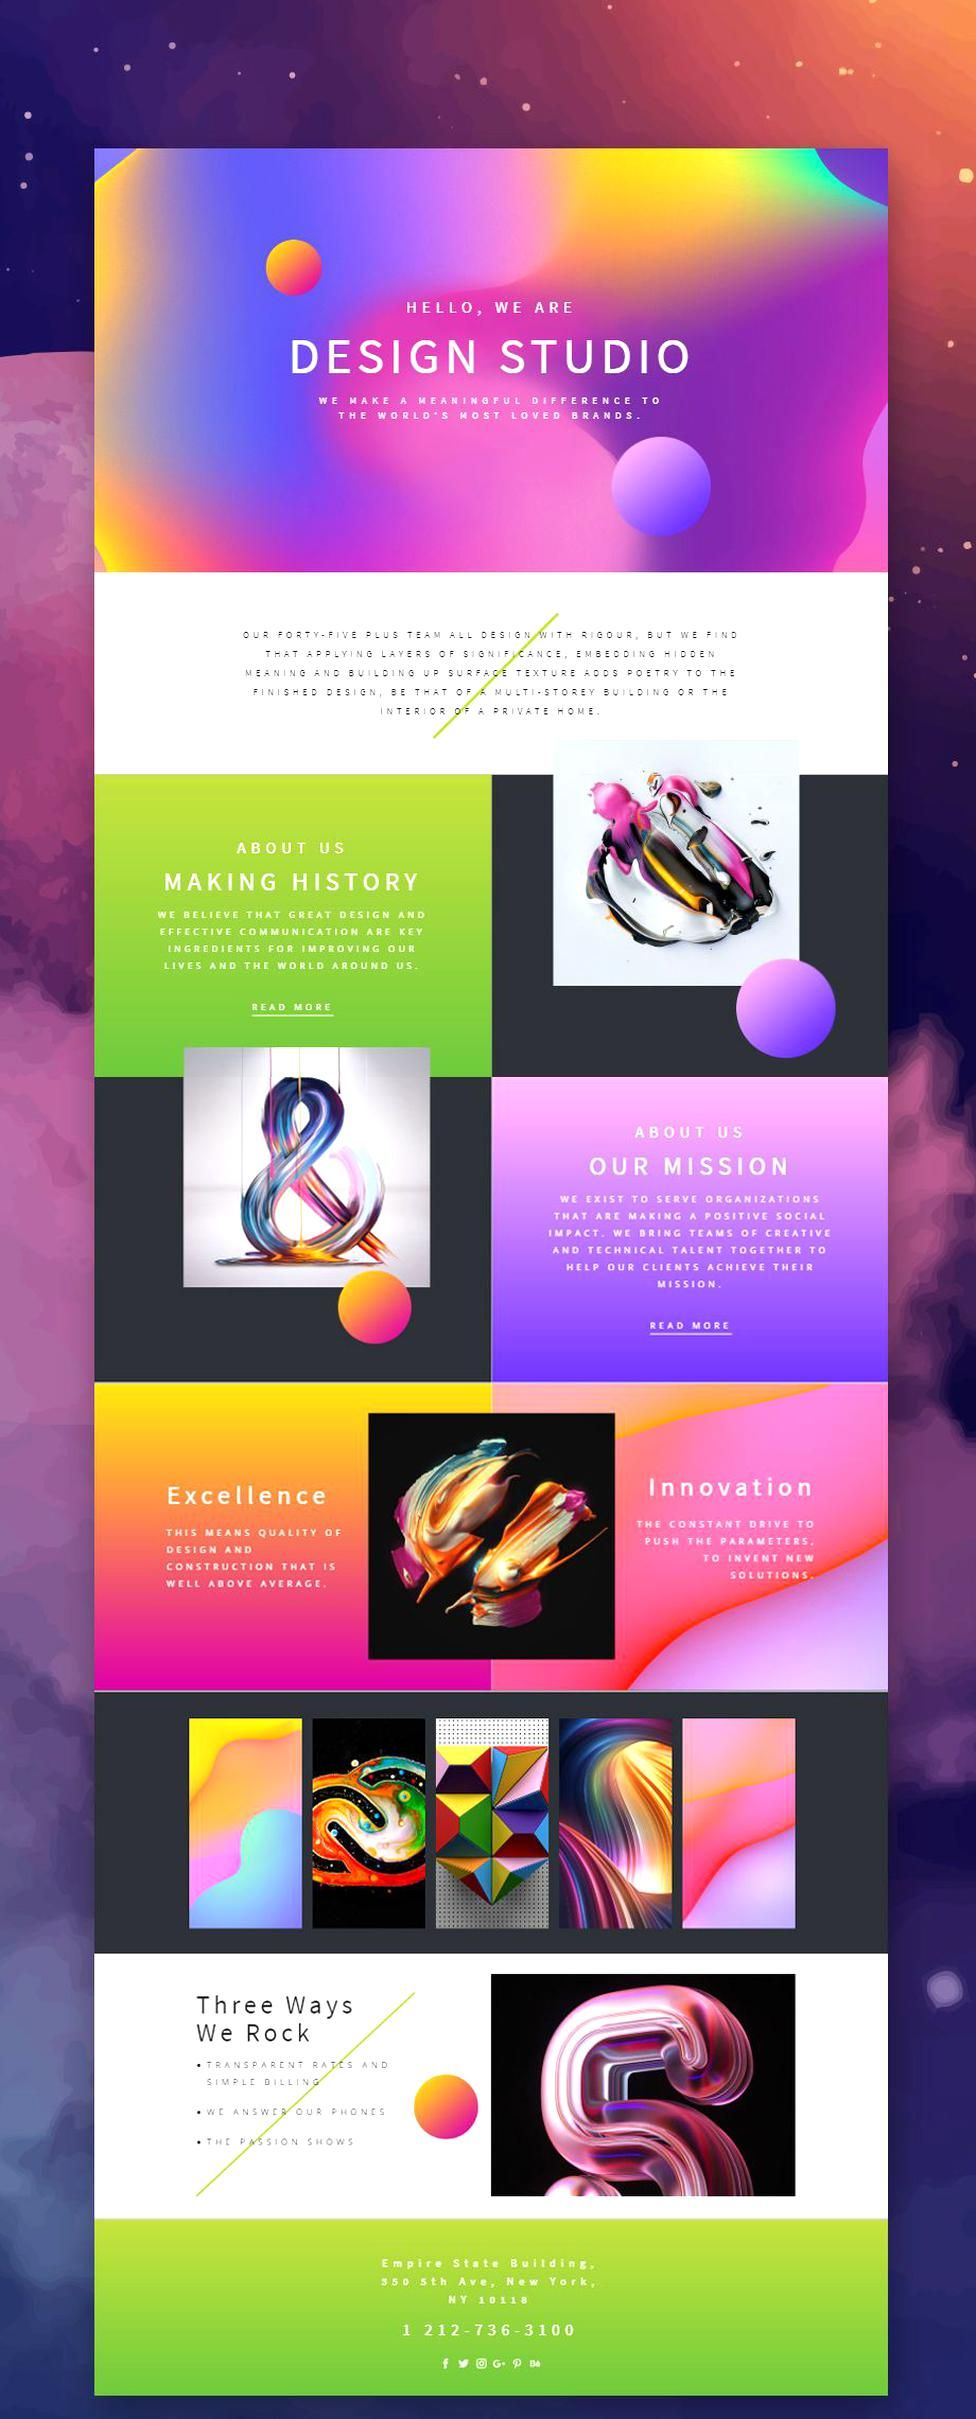 Trendy Design Studio Web Template Click And Start Edit This Web Template Wordpress Theme And Joomla Template Nicepage N In 2020 Web Design Web Design Quotes Design